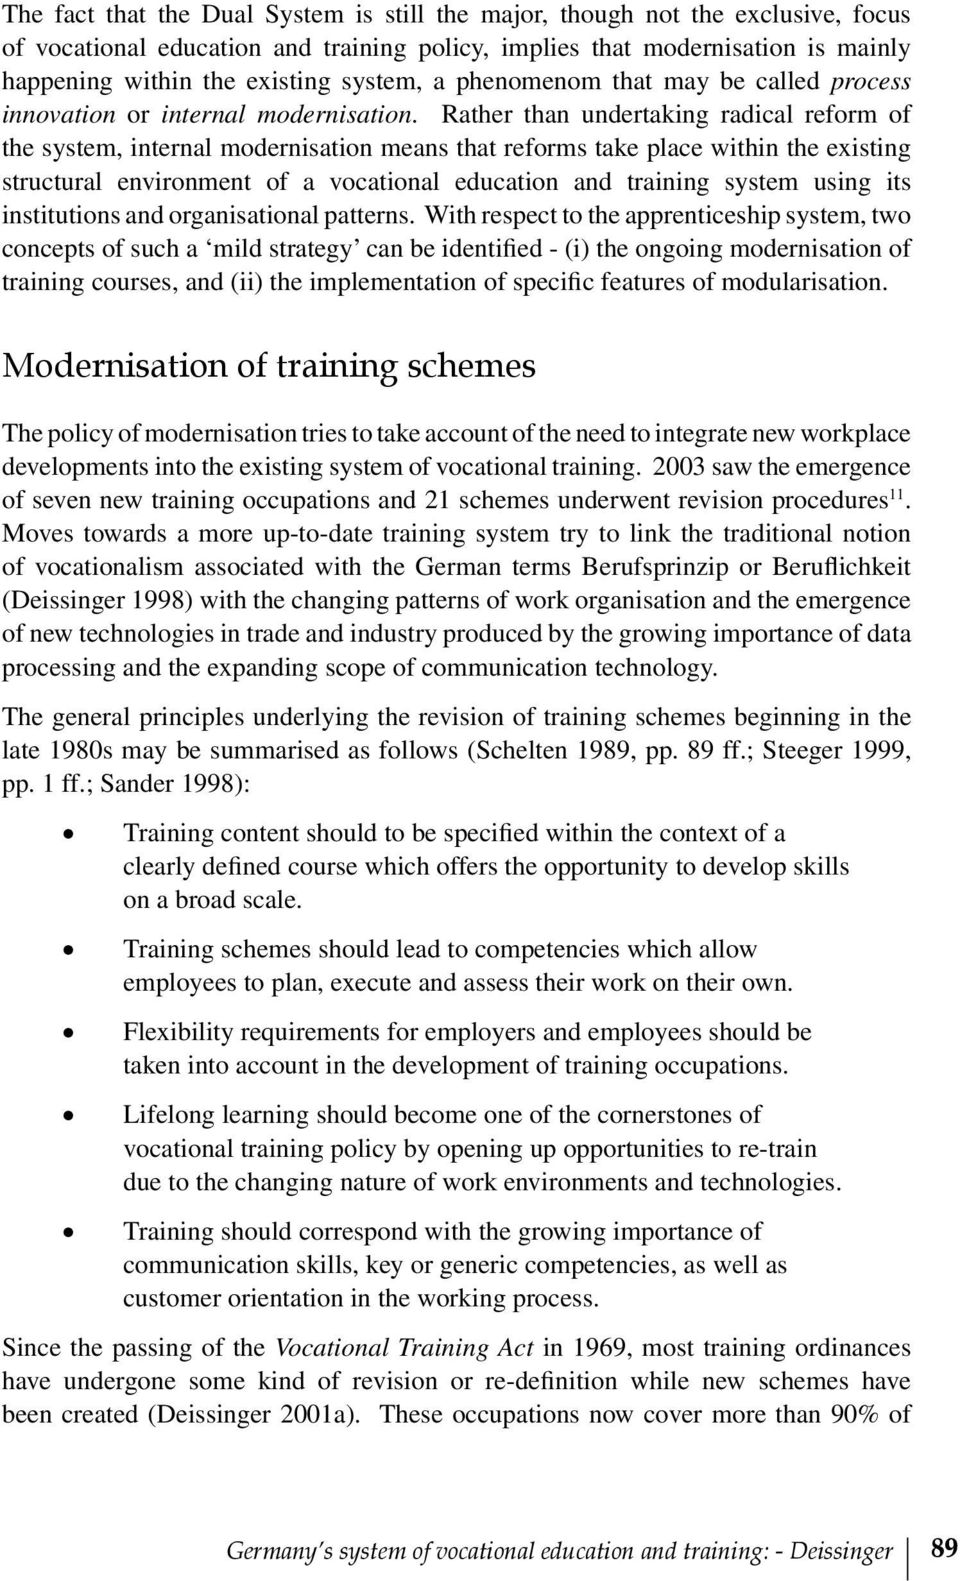 Rather than undertaking radical reform of the system, internal modernisation means that reforms take place within the existing structural environment of a vocational education and training system